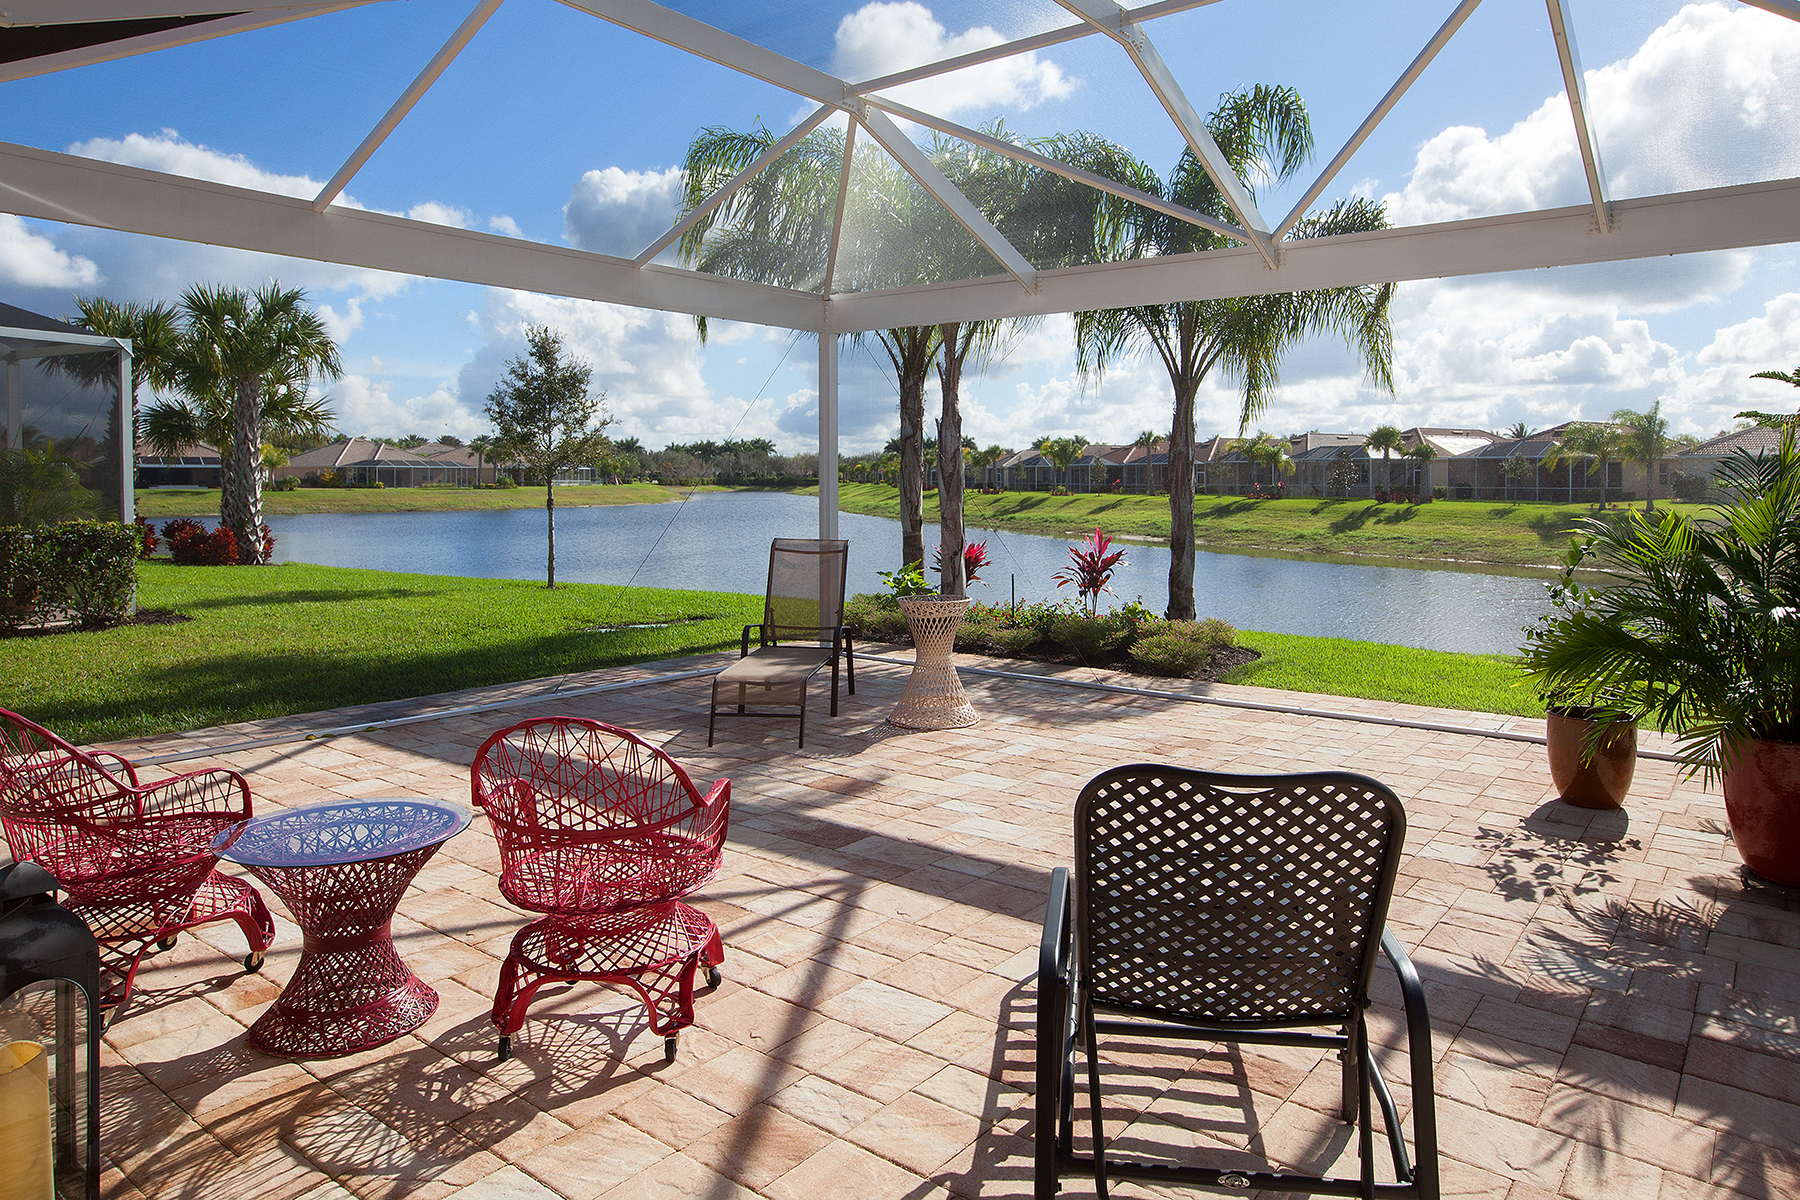 Single Family Home for Sale at Bonita Springs 28061 Quiet Water Way, Bonita Springs, Florida 34135 United States